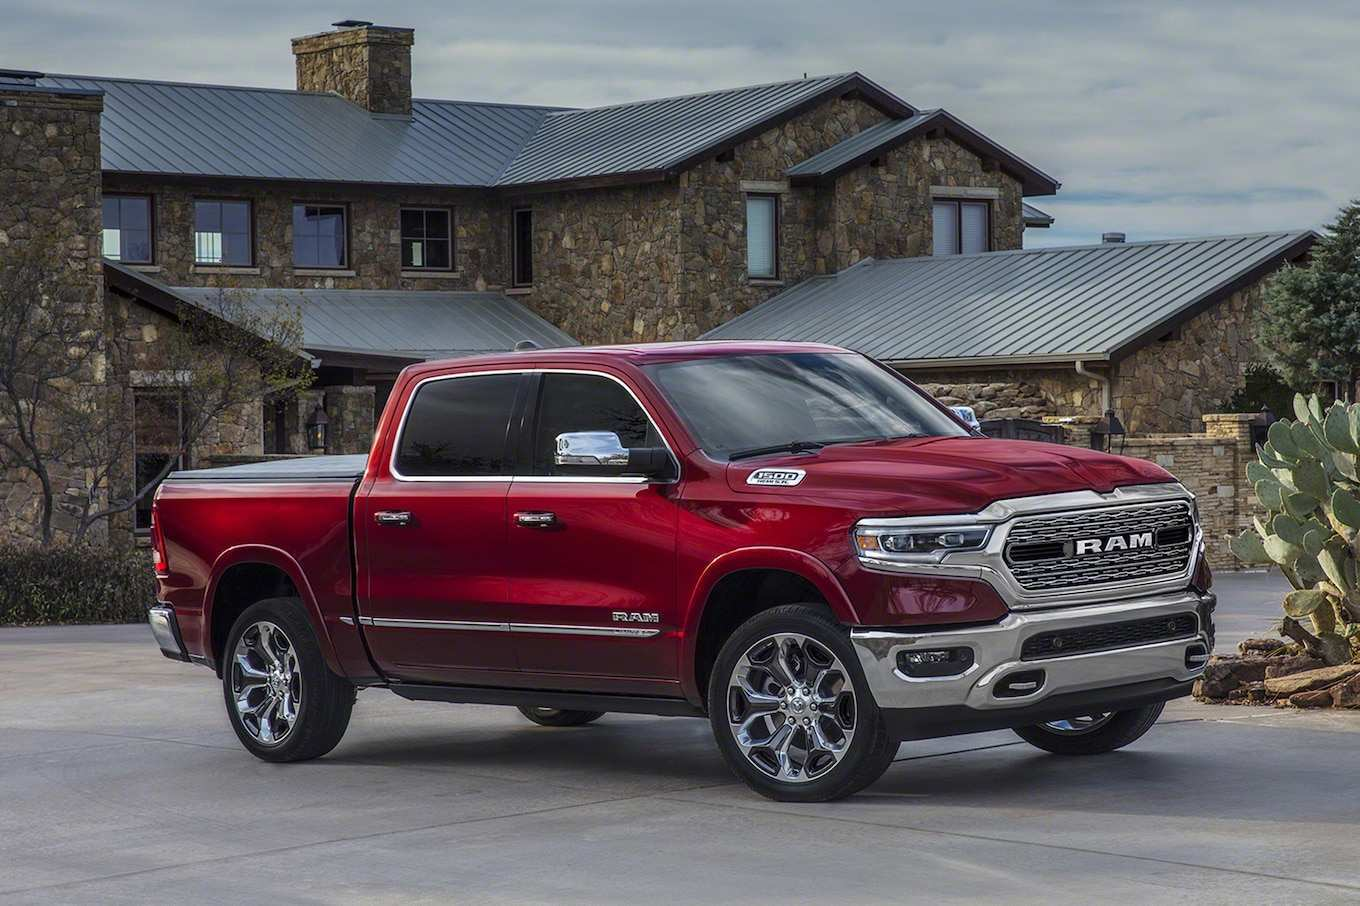 30 Great 2019 Dodge Truck 1500 Exterior and Interior for 2019 Dodge Truck 1500